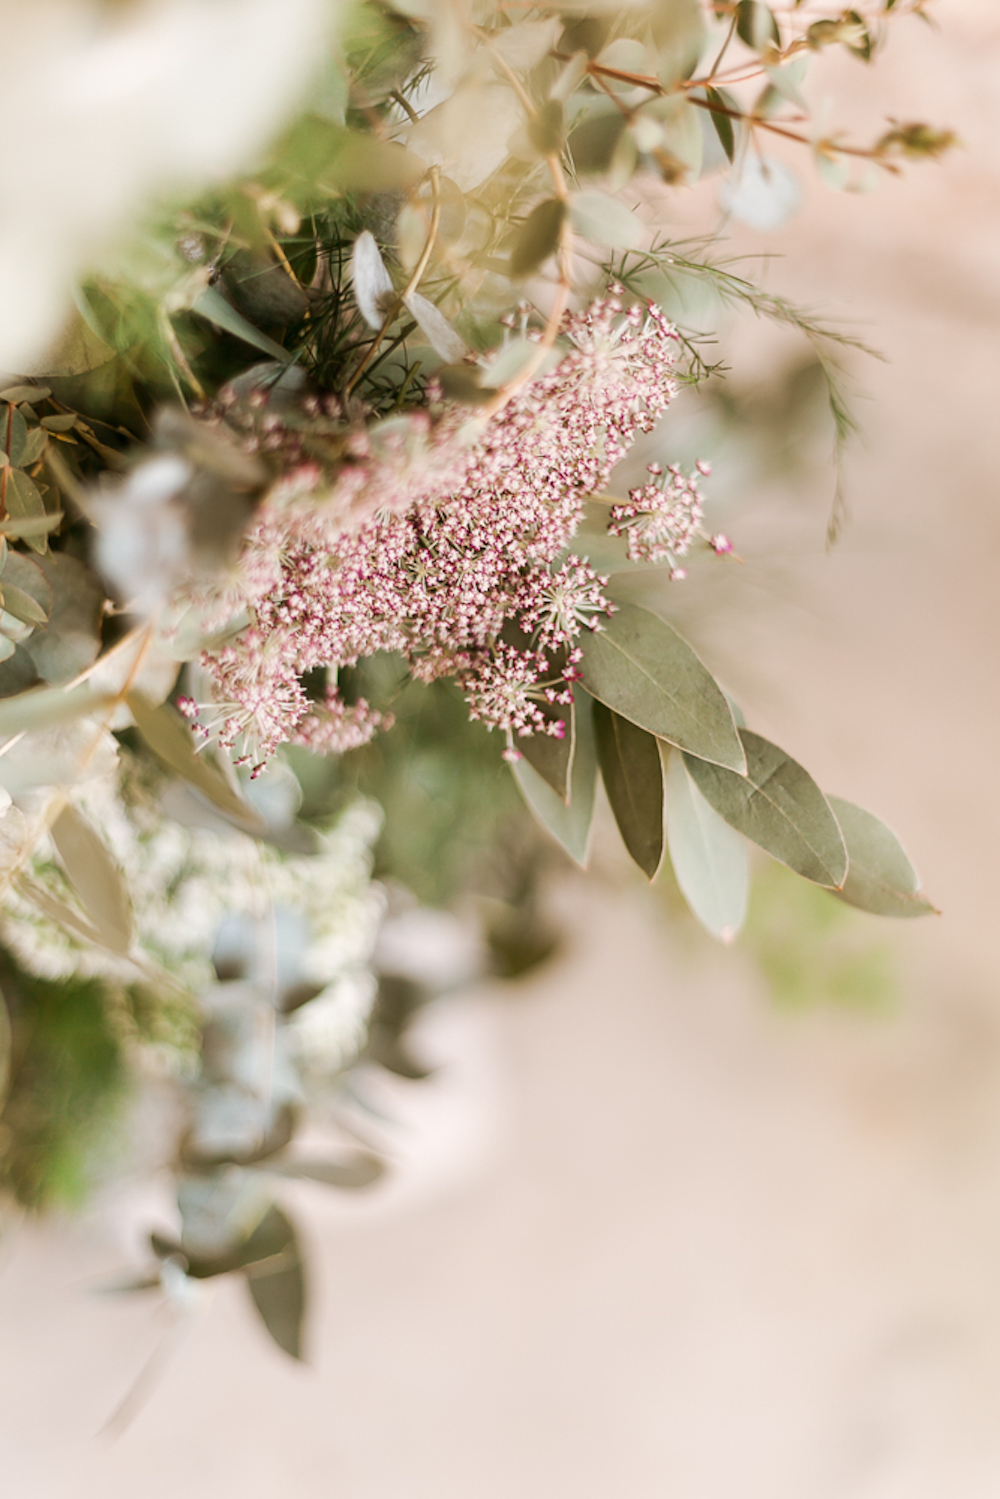 parisian-inspired-blog-mariage-shooting-inspiration-vegetal-abbaye-trois-fontaines-marne-cg-photographie-11.jpg